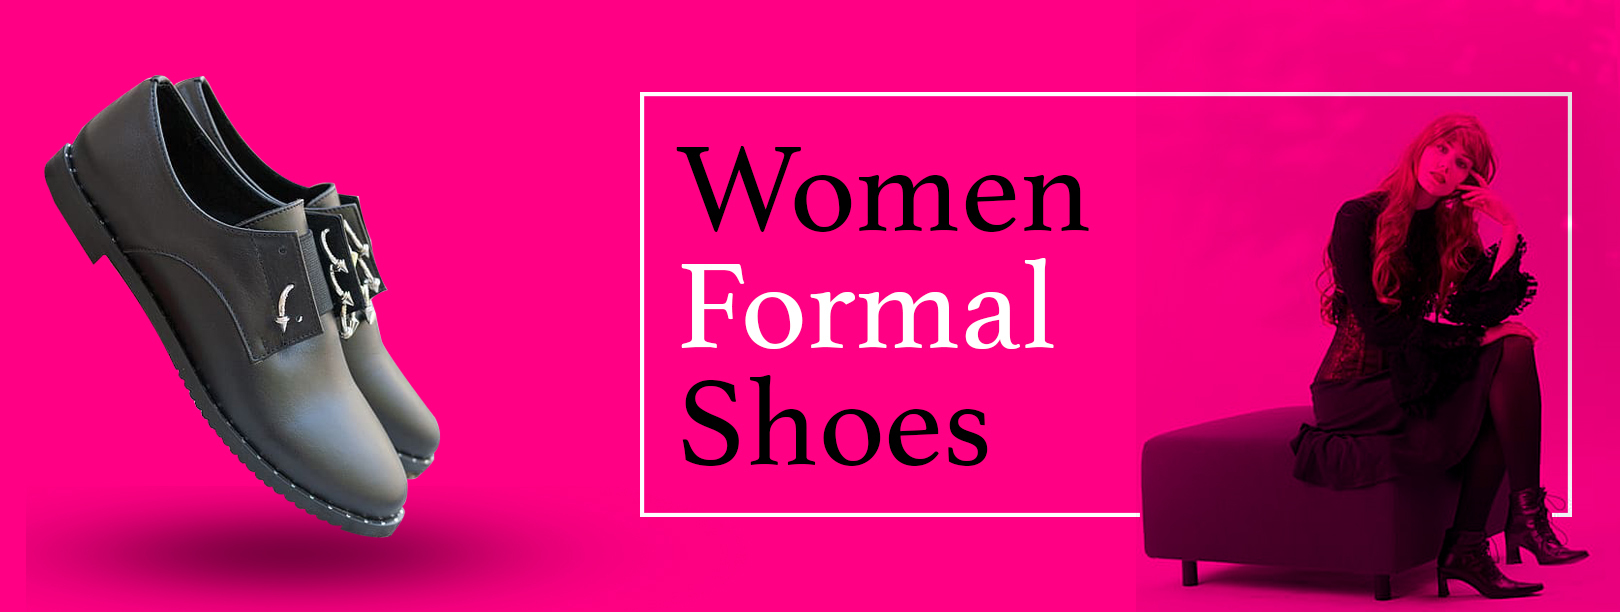 Flipkart Women Formal Shoes